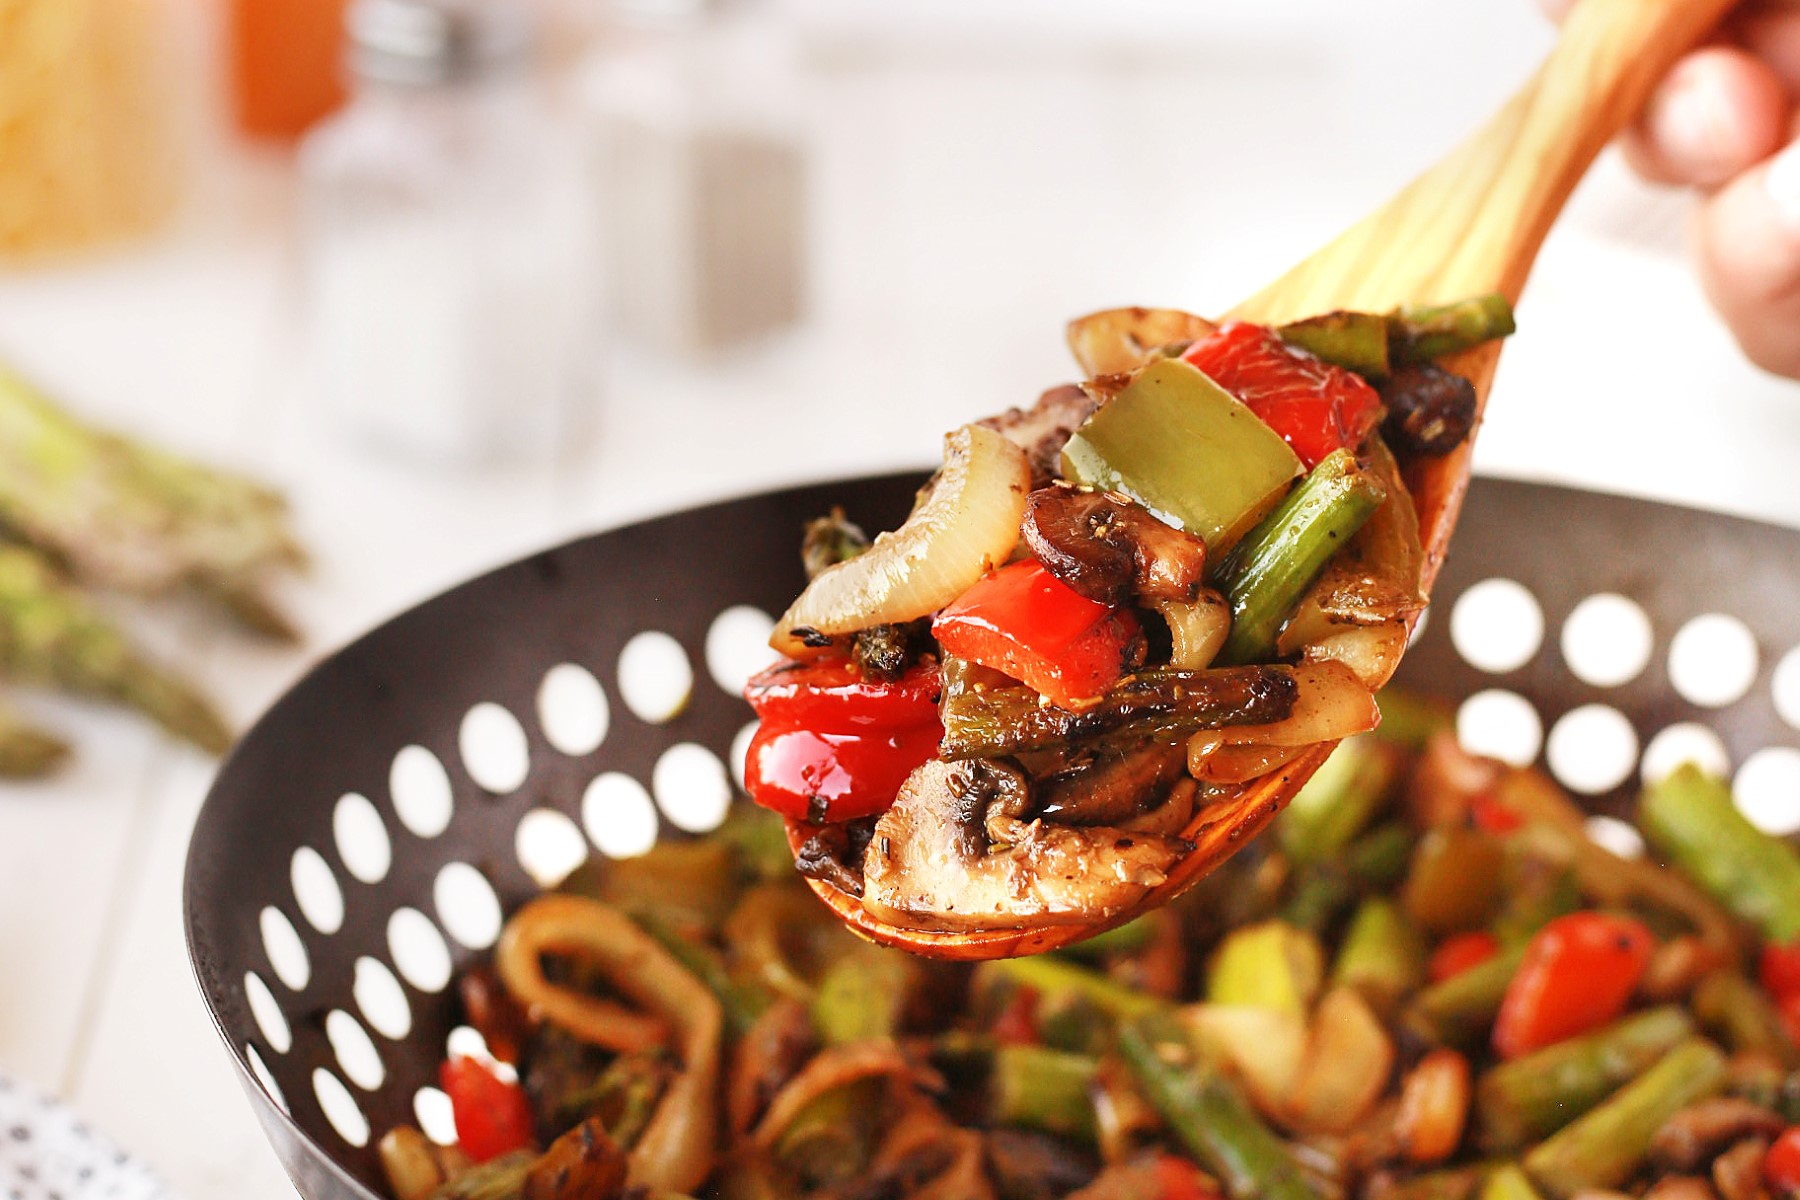 Wooden spoonful of cooked vegetables with the BBQ wok in the background.